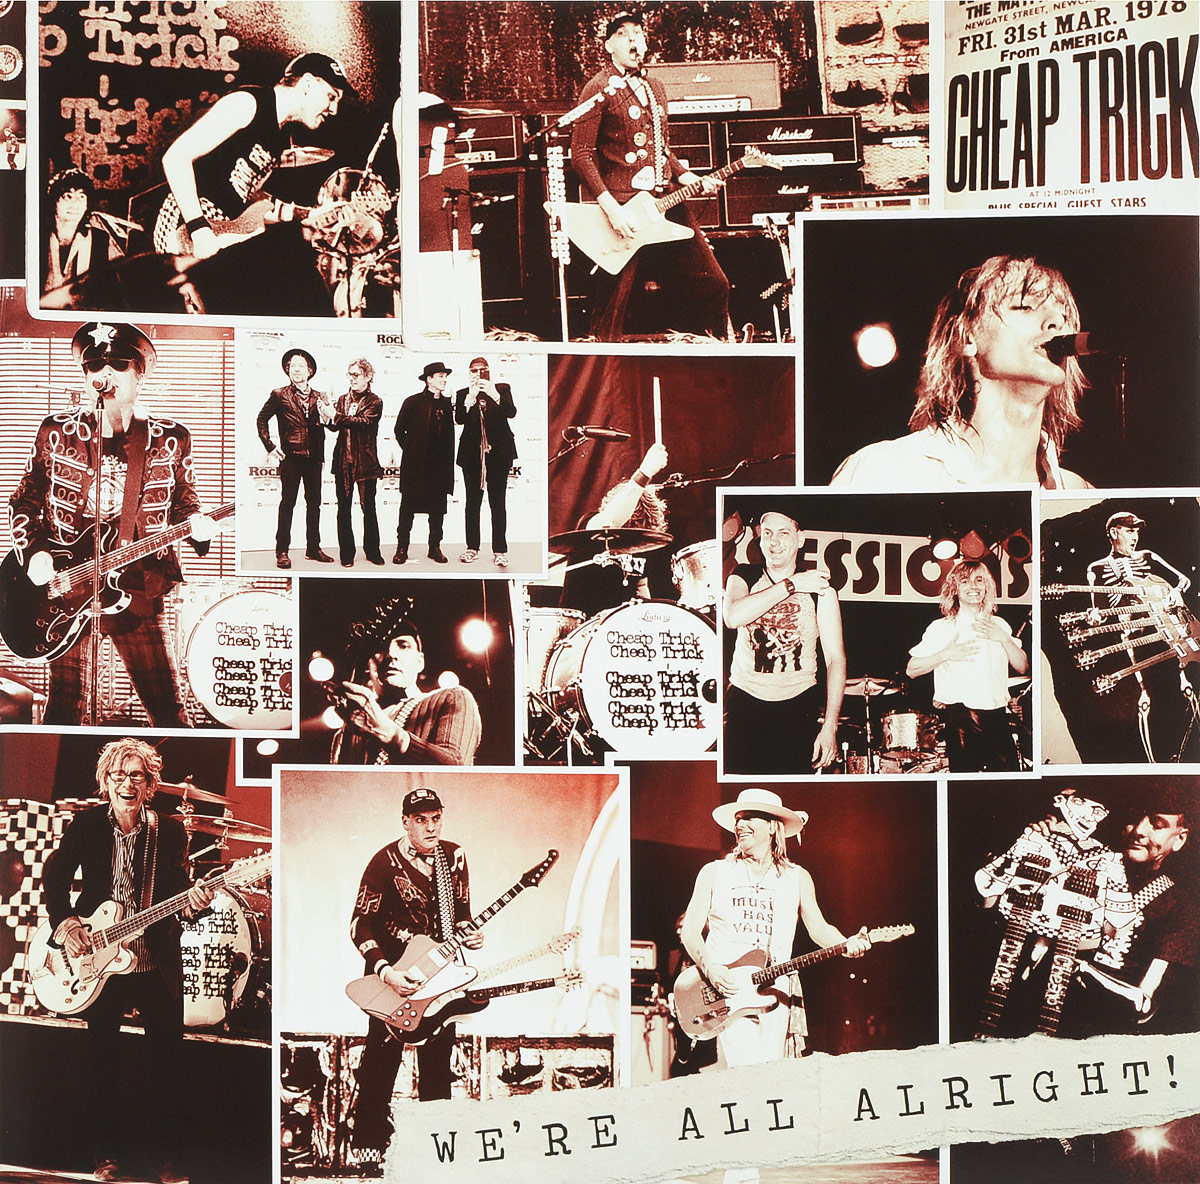 Cheap Trick Cheap Trick. We're All Alright! (LP) trick